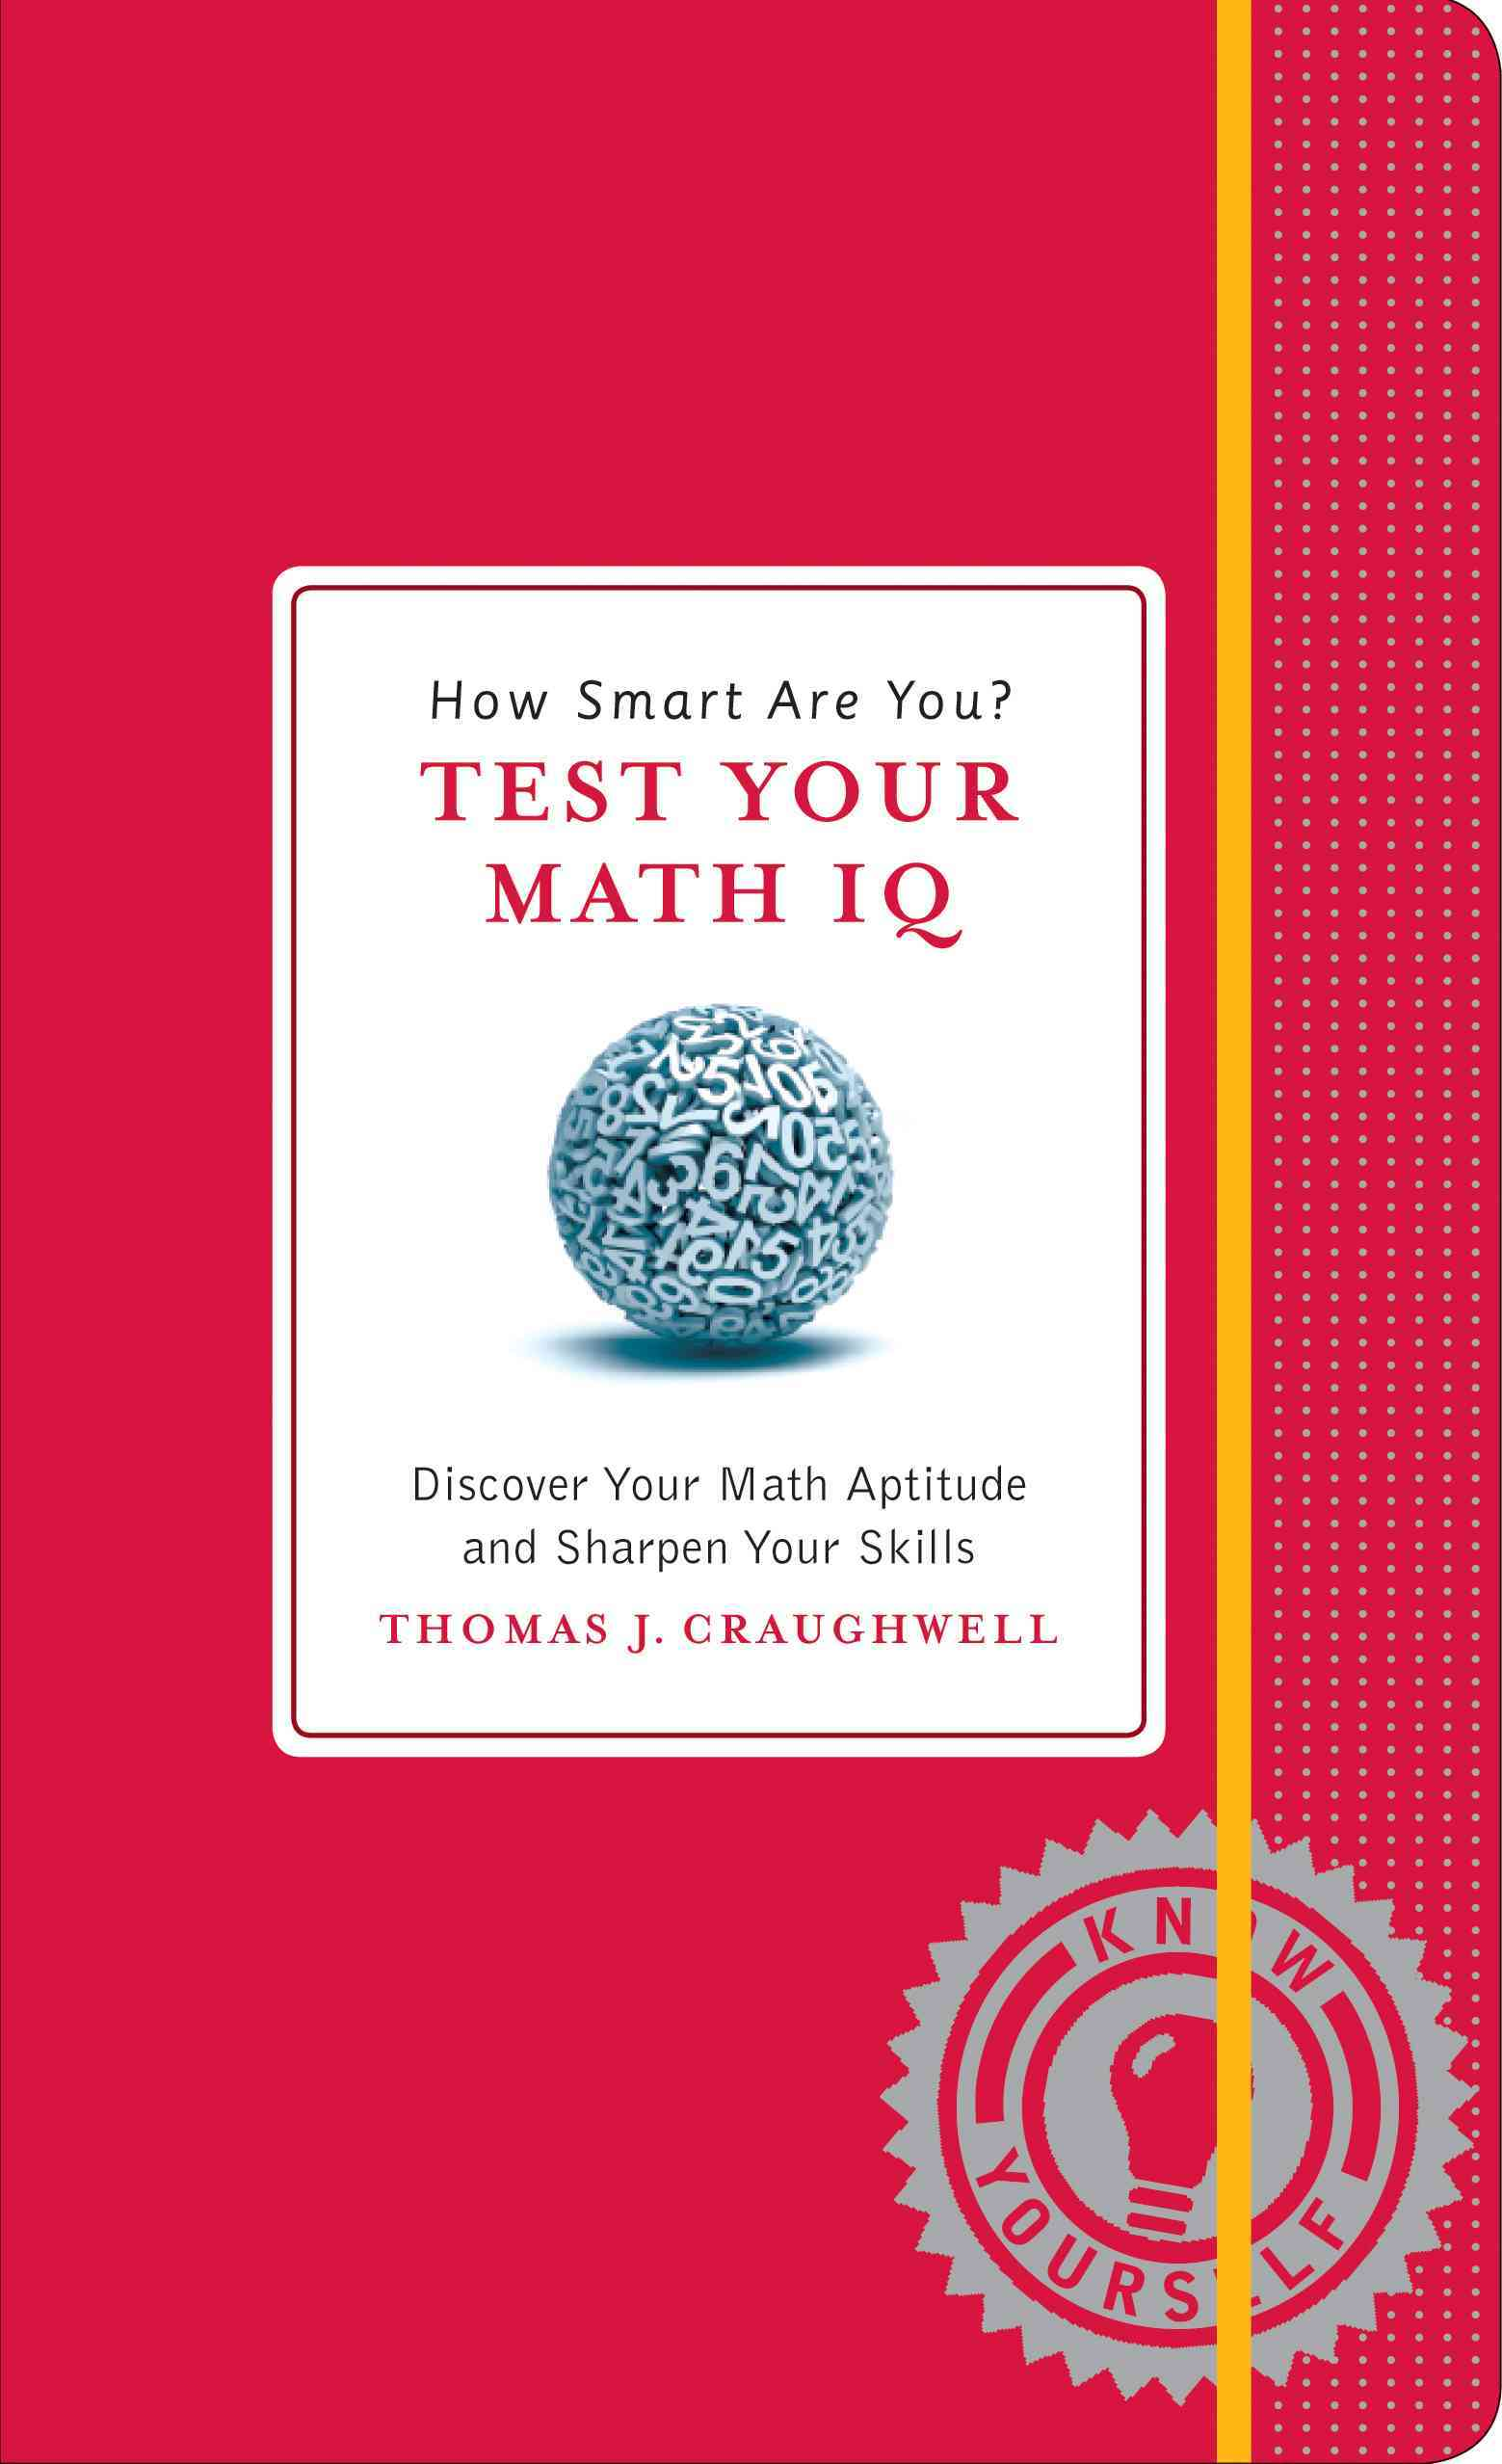 How Smart Are You? Test Your Math IQ: Discover Your Math Aptitude and Sharpen Your Skills (Hardcover)